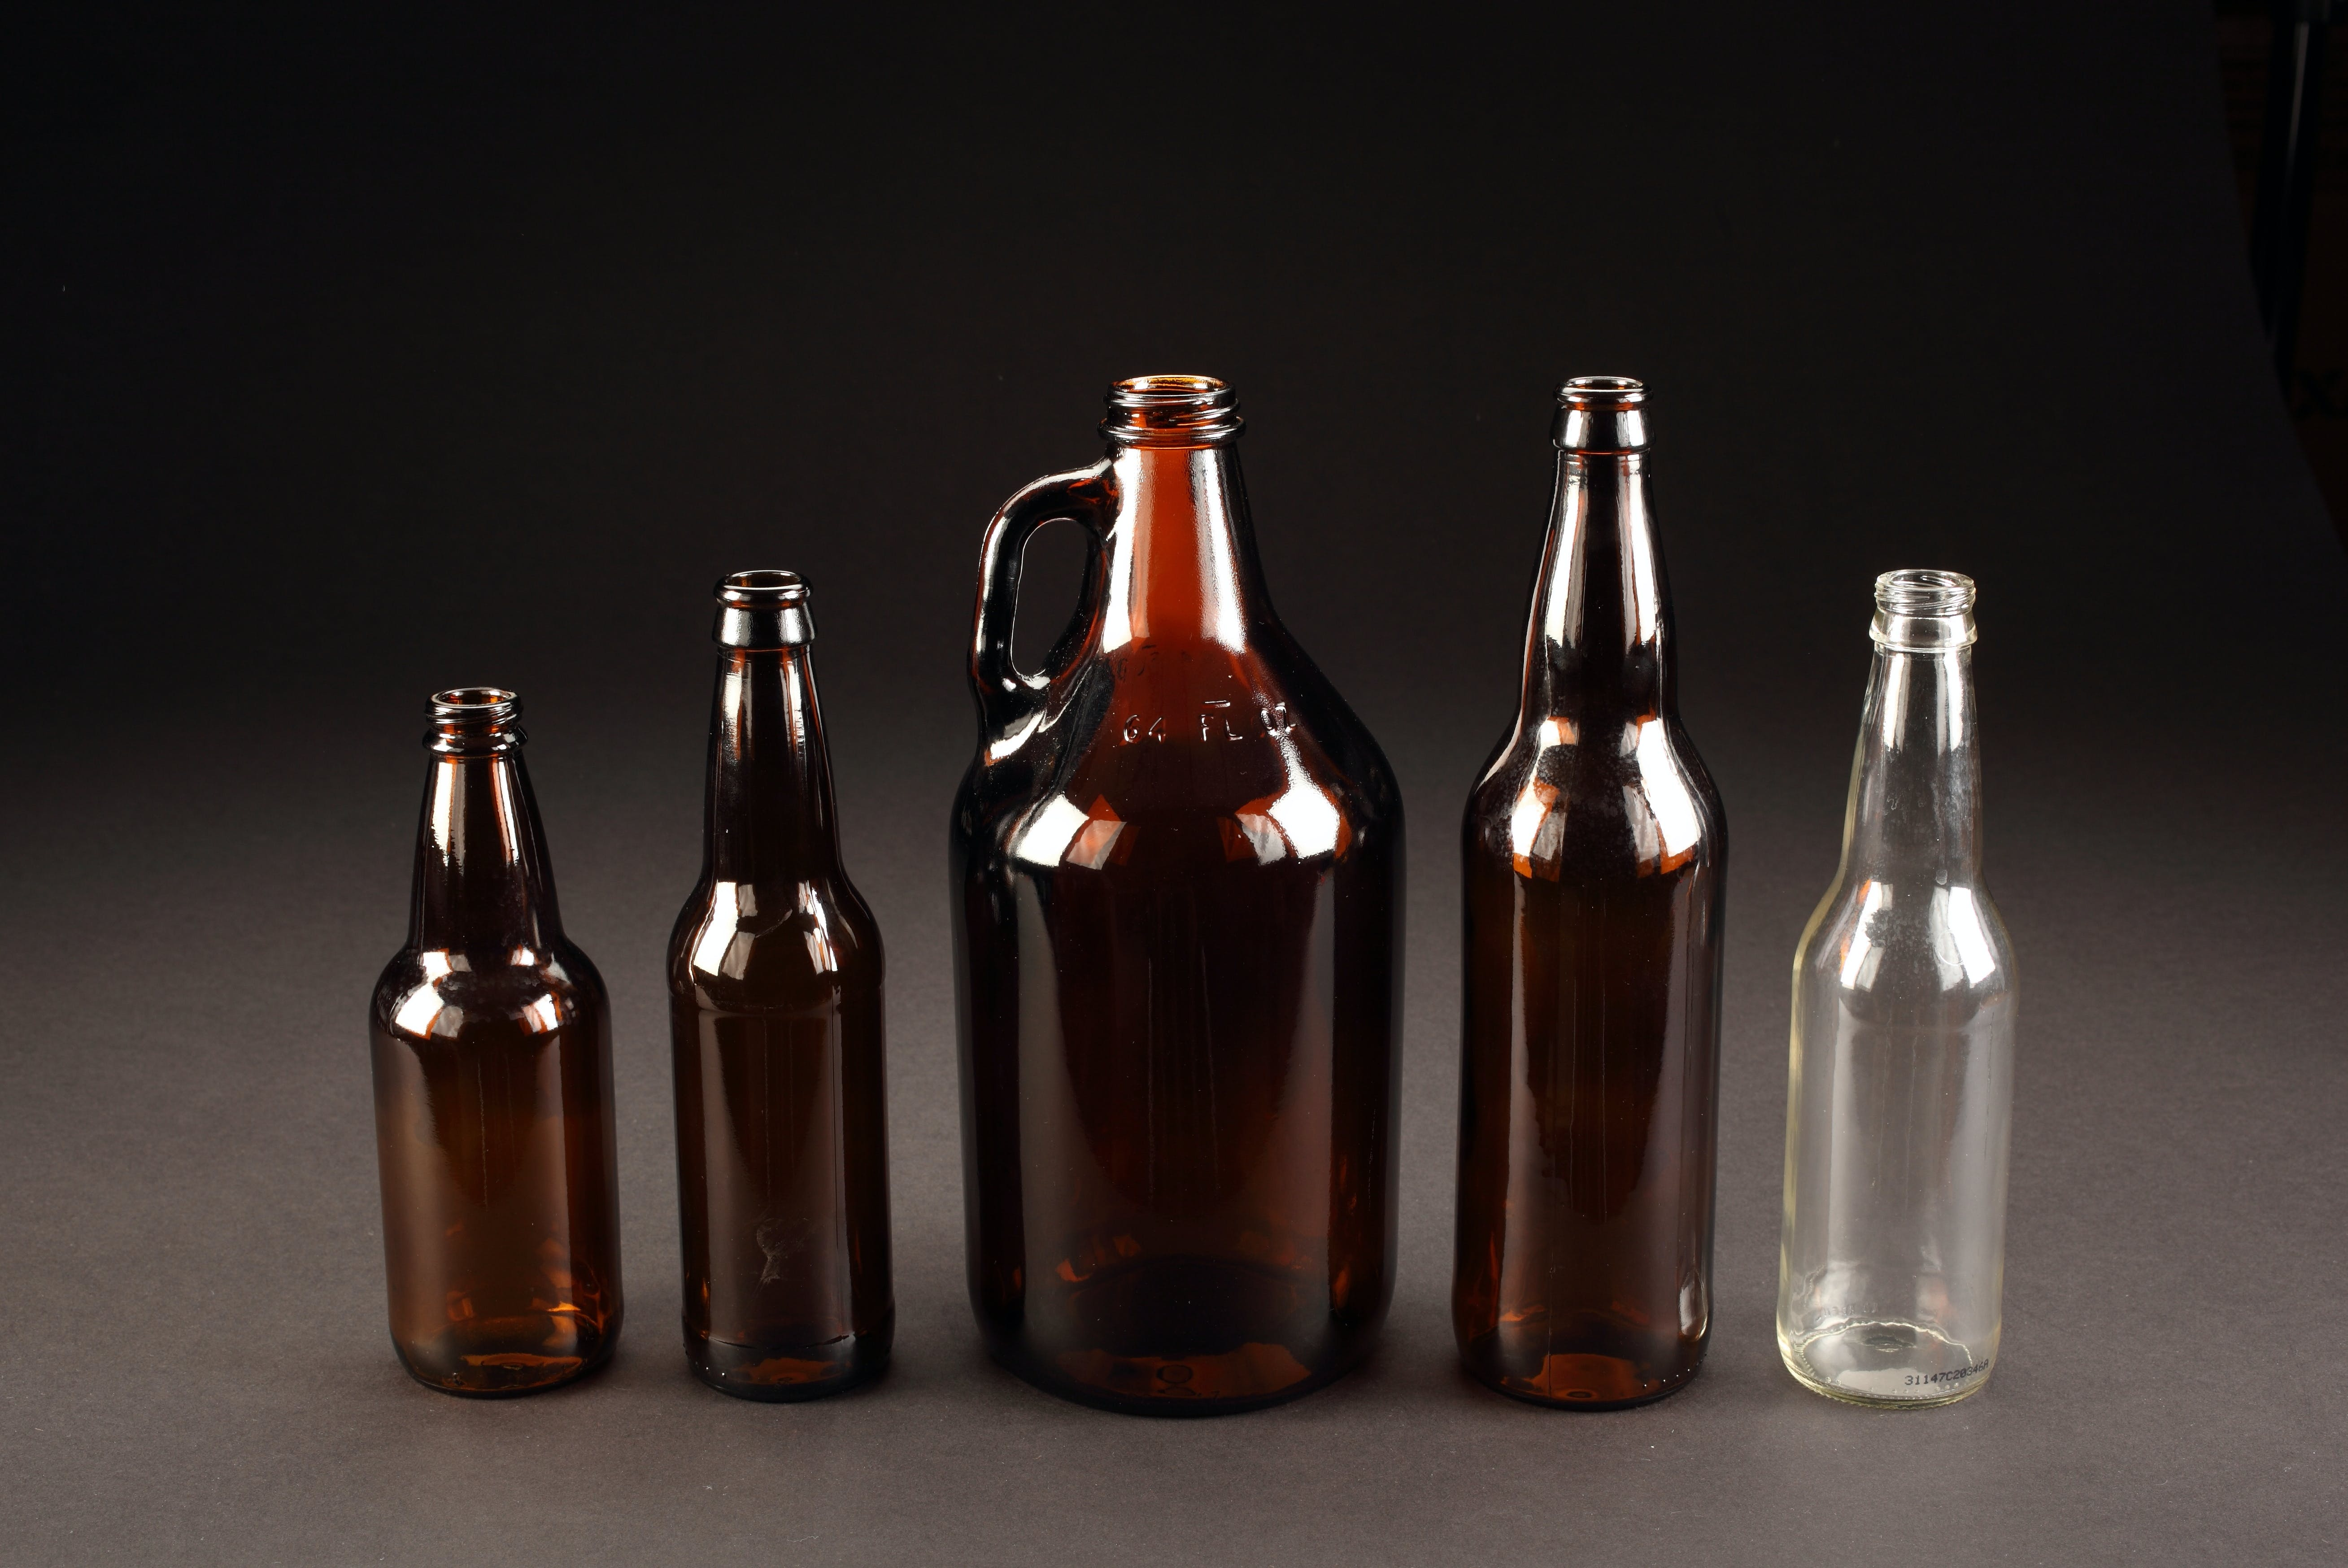 Beer Bottles Beer bottle sold by WB Bottle Supply Company